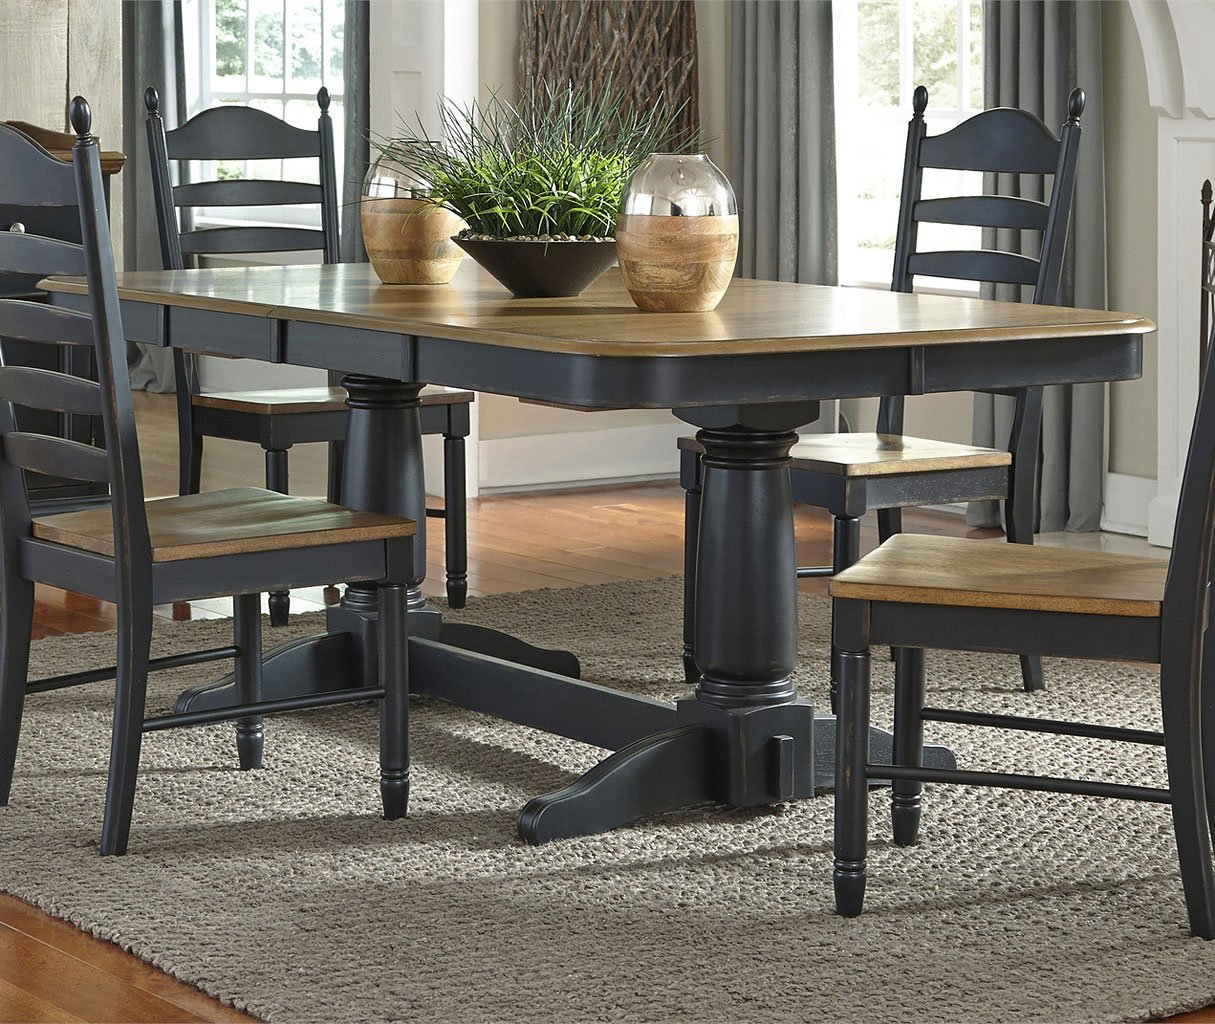 Dazzelton Dining Room Table: Springfield II Rectangular Dining Table Liberty Furniture